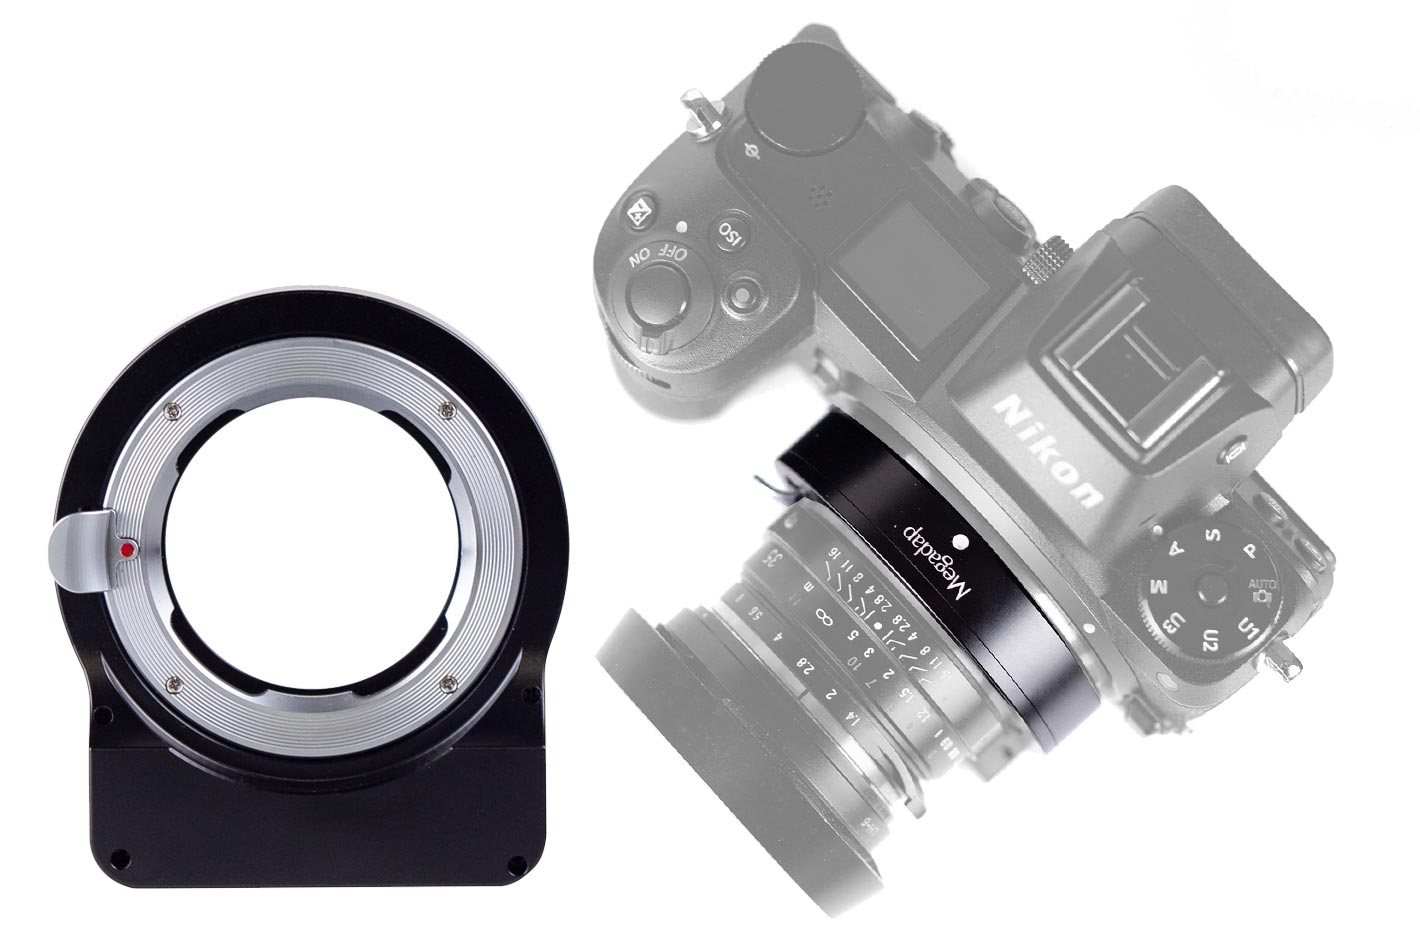 Megadap adapter turns manual focus lenses into autofocus